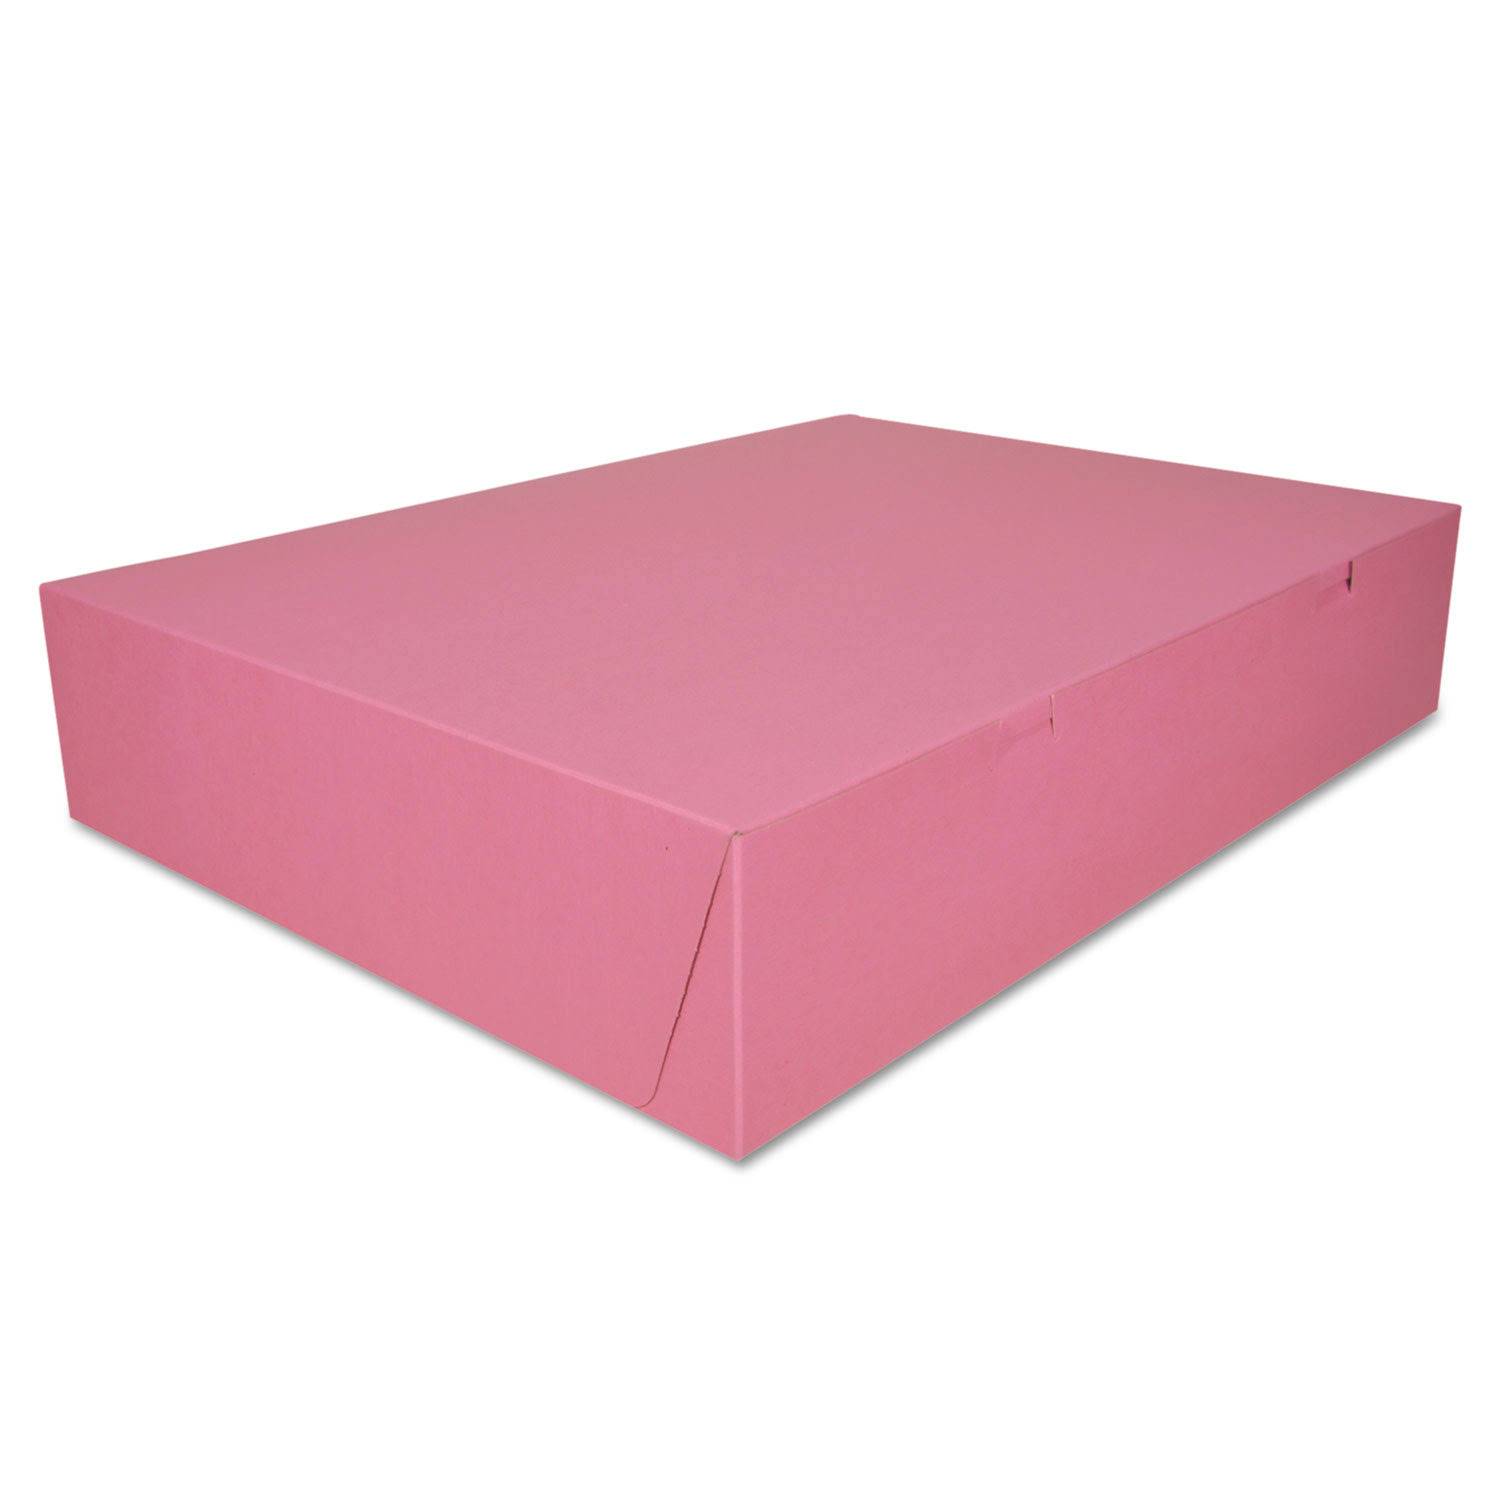 "SCT Paperboard Non-Window Lock-Corner Bakery Box - Pink, 6"" x 4 1/2"" x 2 3/4"", 50ct"